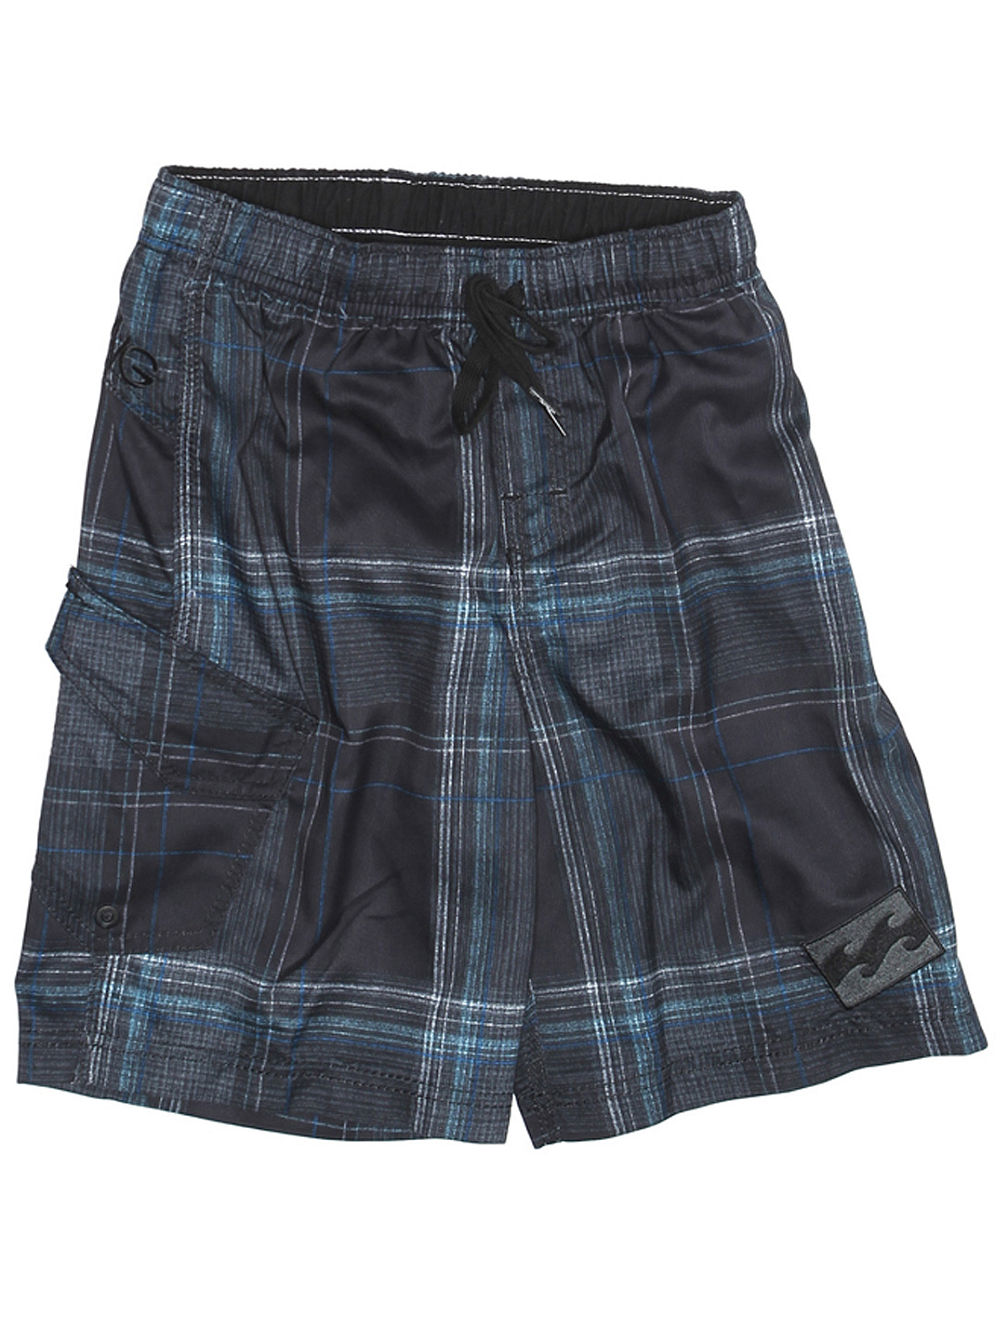 Ru Serius Check Boardshort Youth